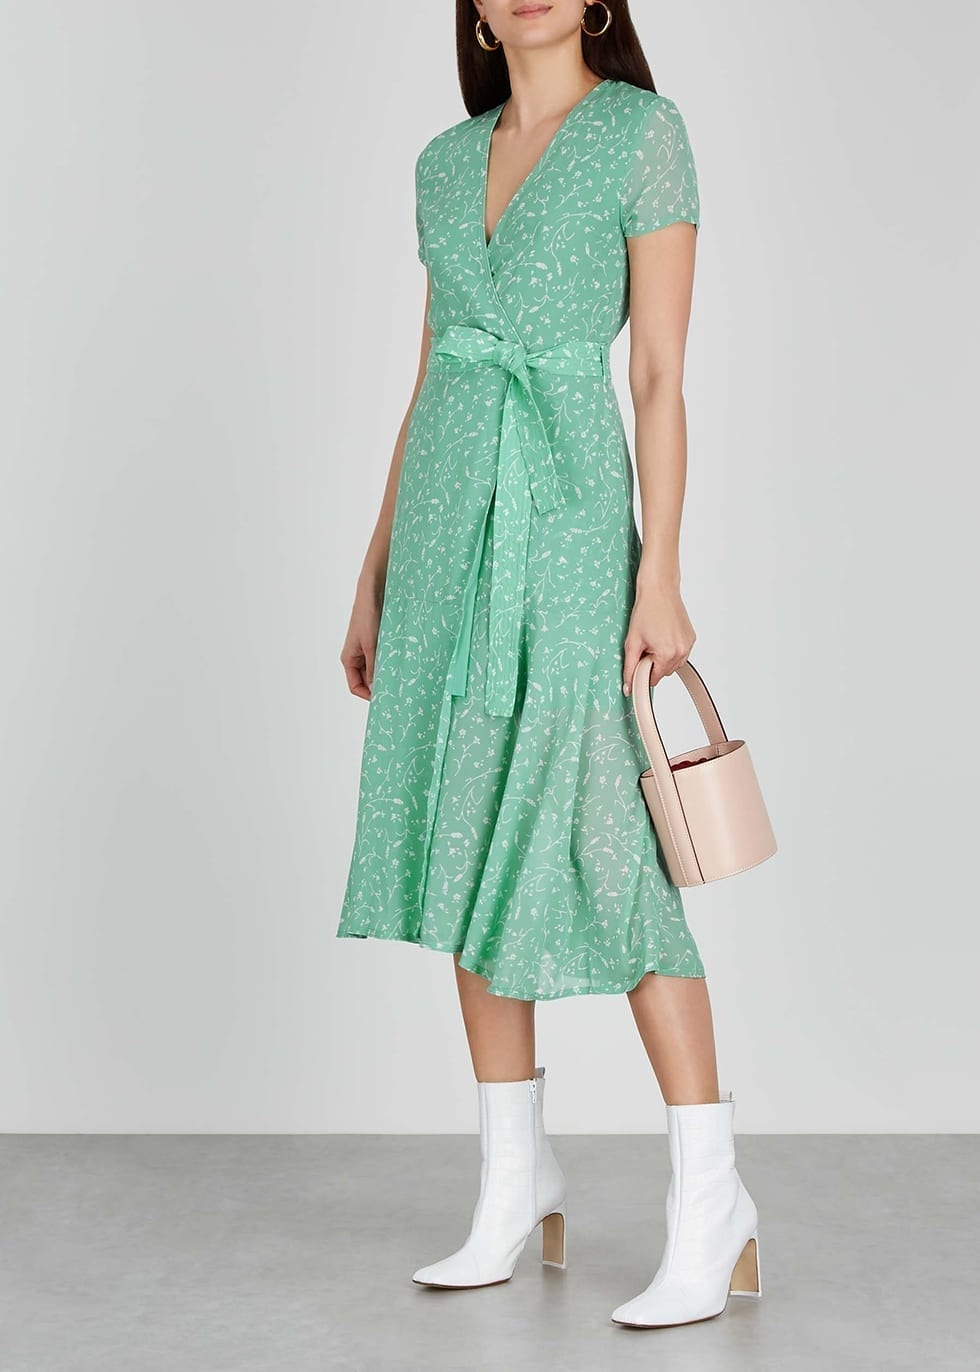 SAMSØE & SAMSØE Green Floral-print Midi Dress